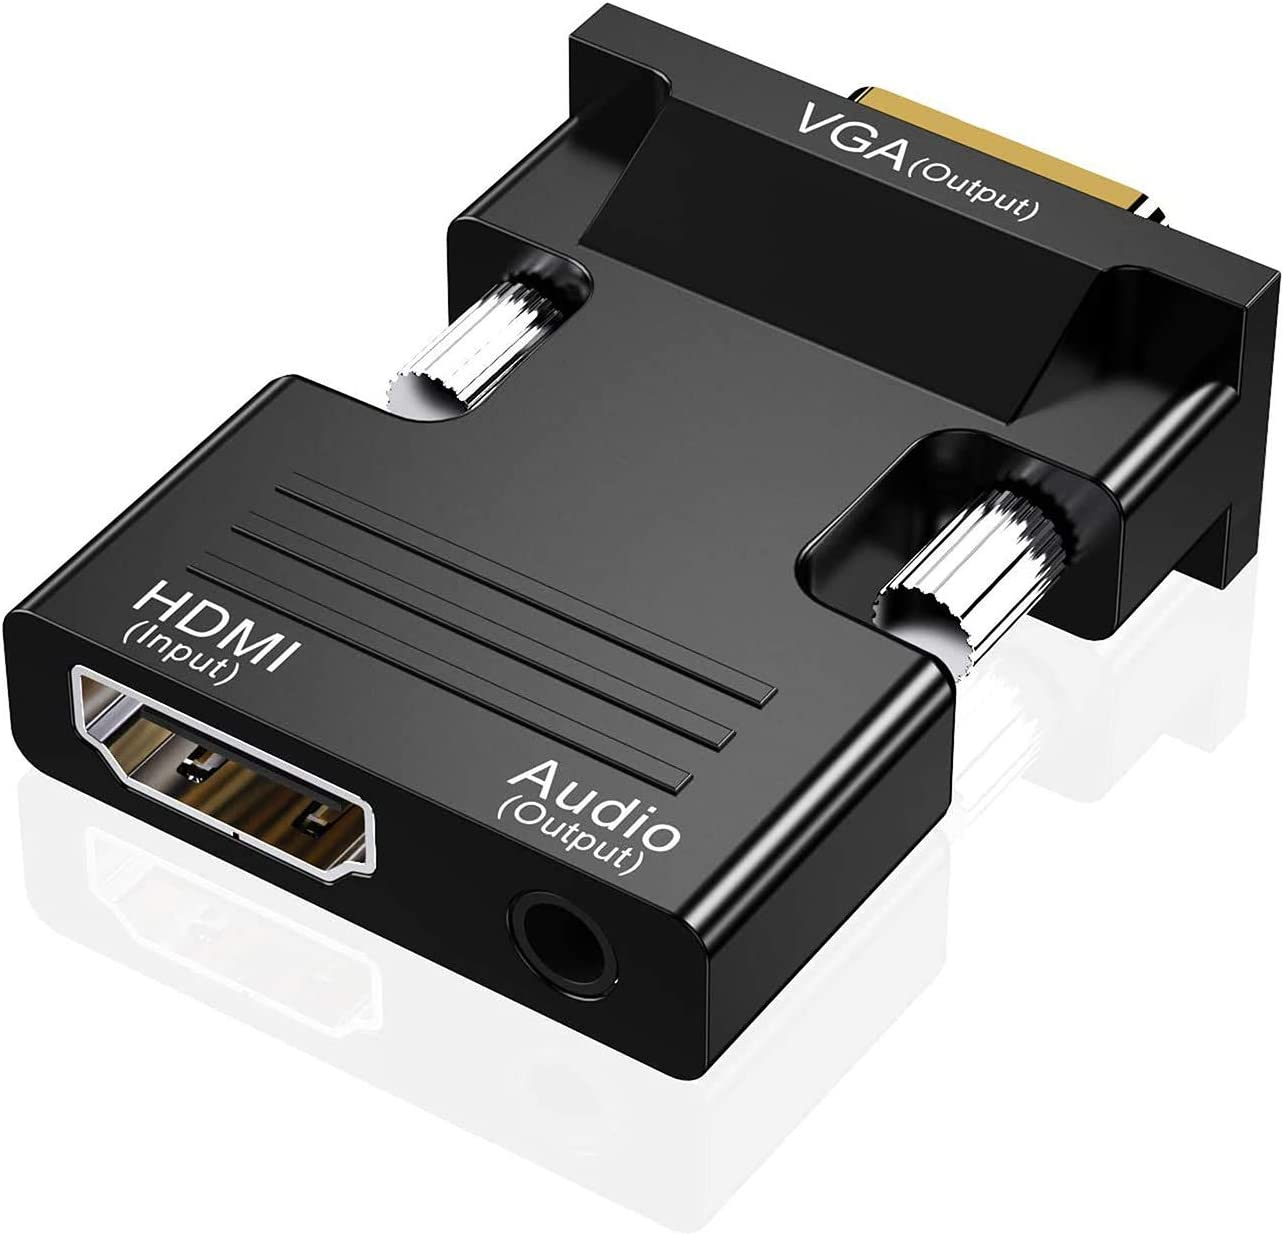 HDMI to VGA Adapter, Audio Output Cable Computer Set-top Box Converter Connector Adapter for Laptop, PC, Monitor, Projector, HDTV, Chromebook, Roku, Xbox(3.5mm Stereo Cable Included)